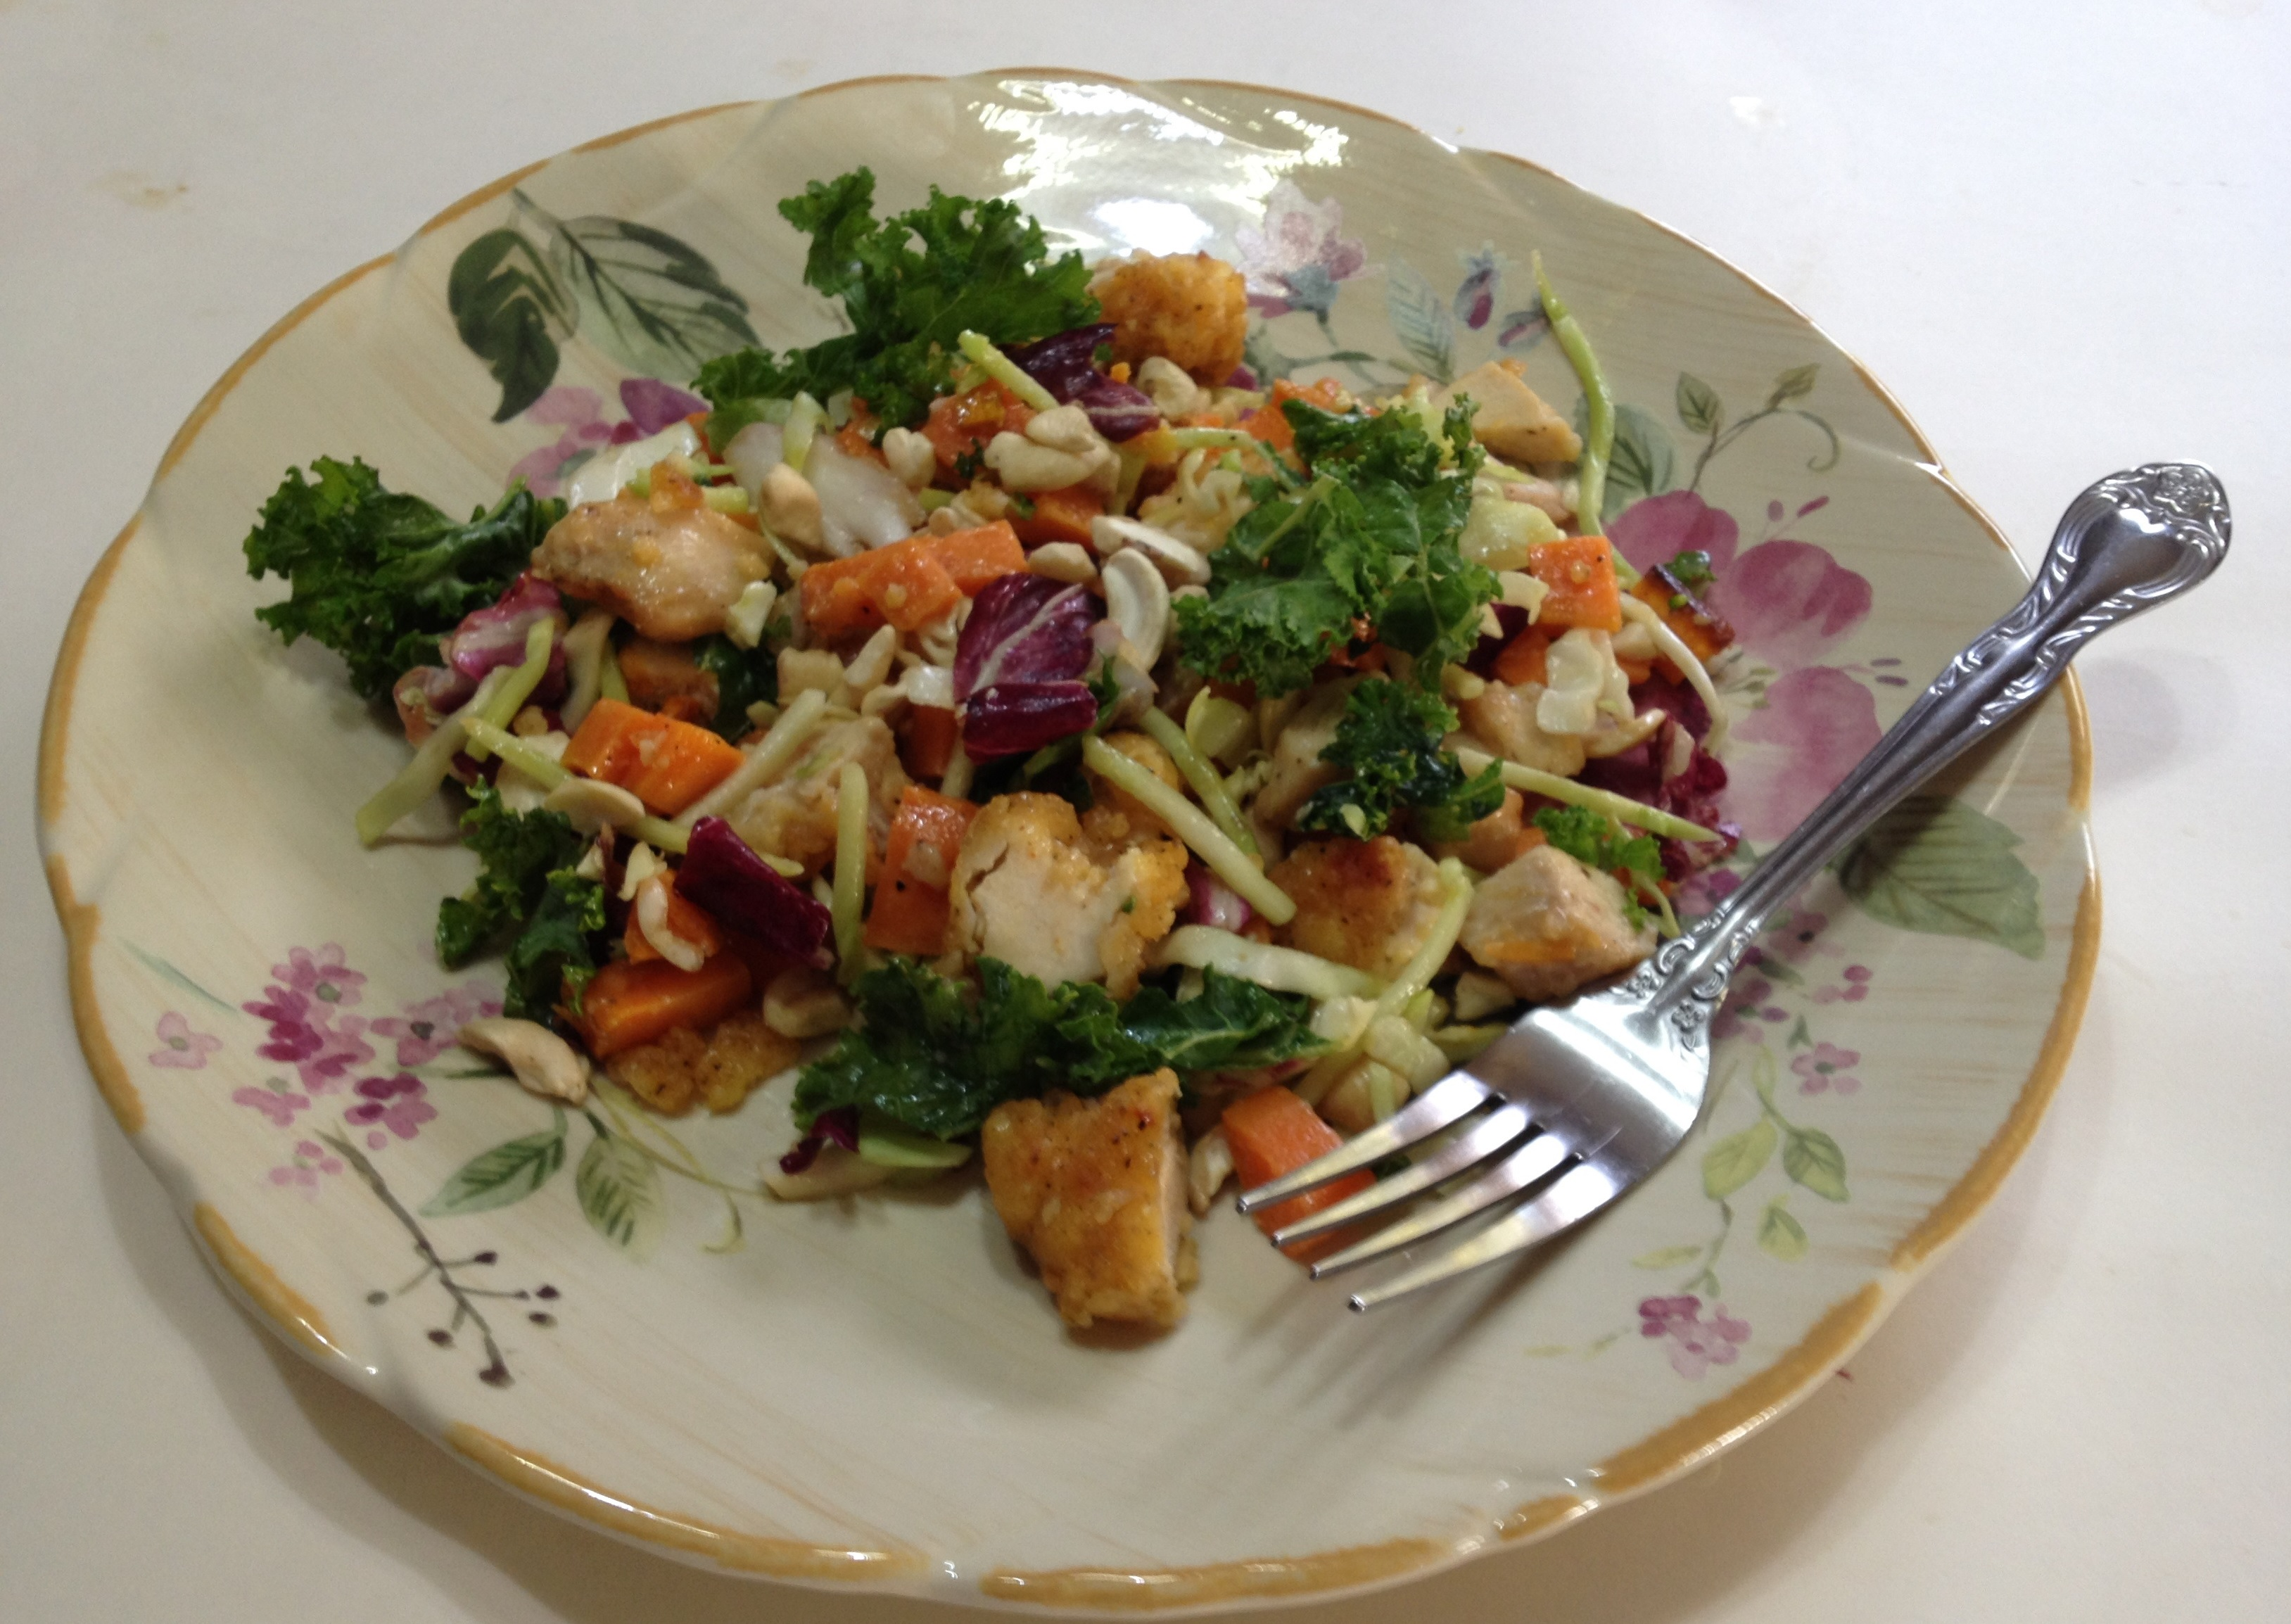 Leafy Green Salads as a Main Course | Splendid Recipes and More